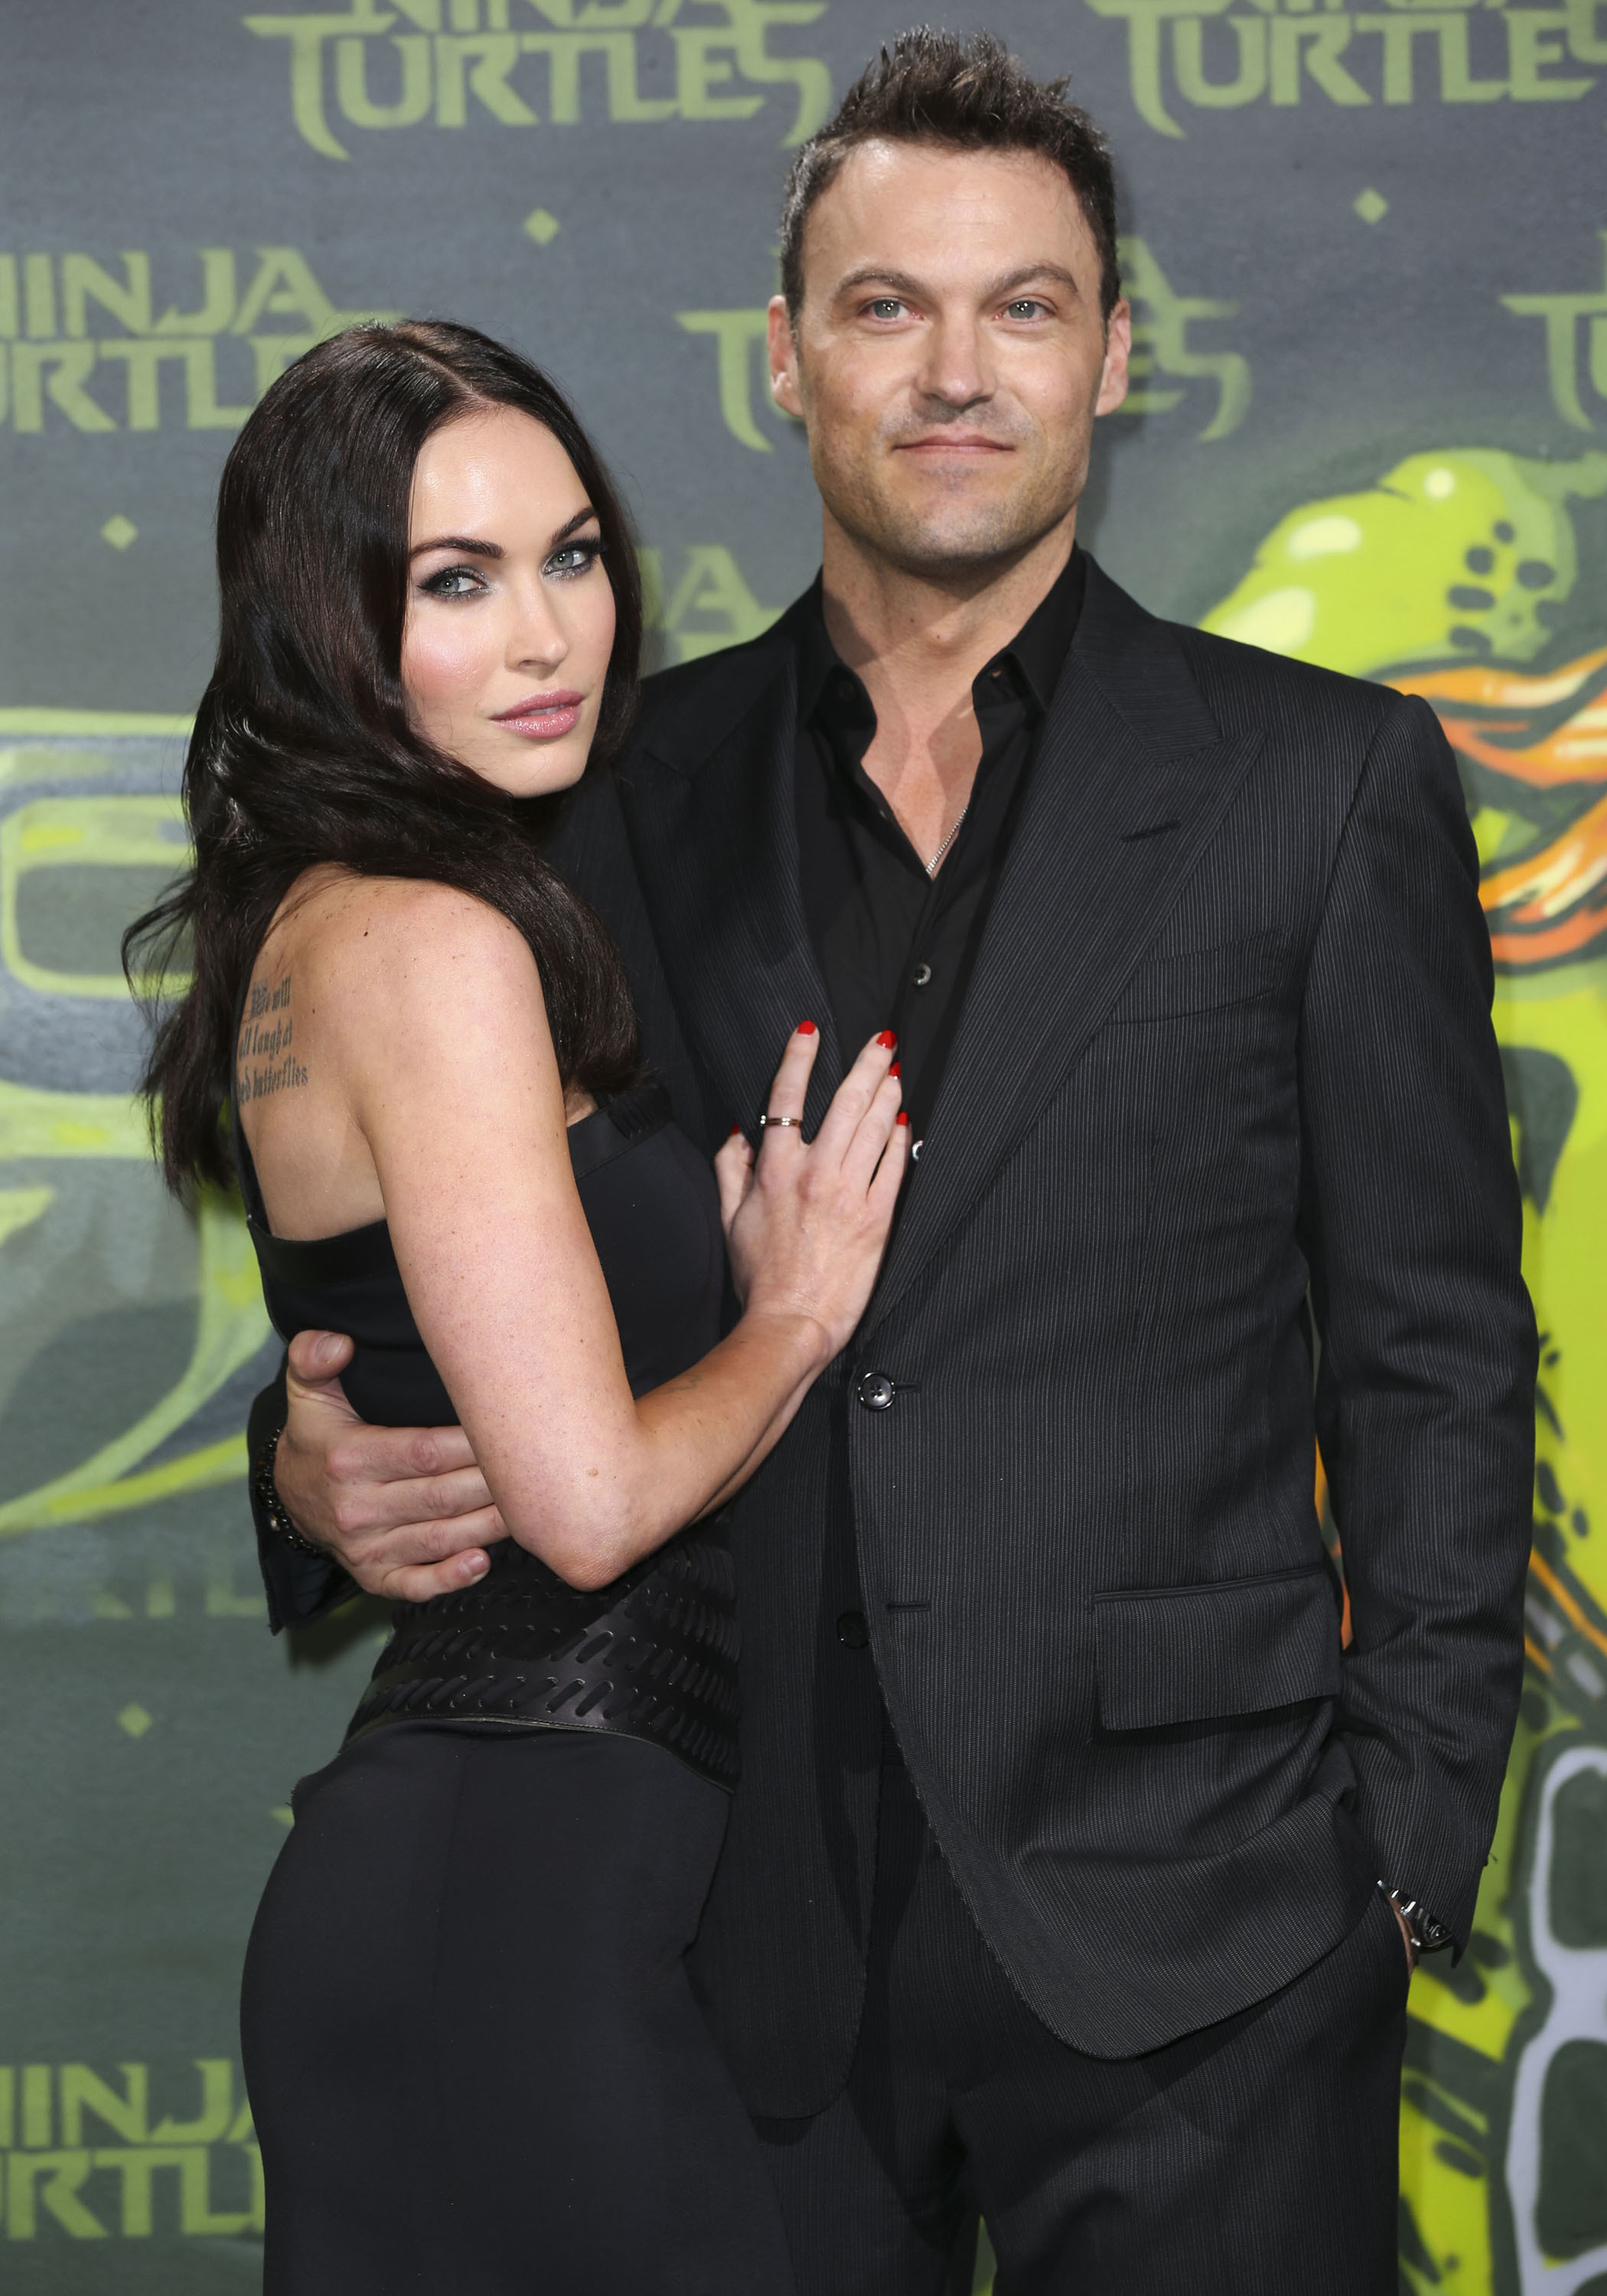 Megan Fox 'spoiled' by Brian Austin Green on her birthday